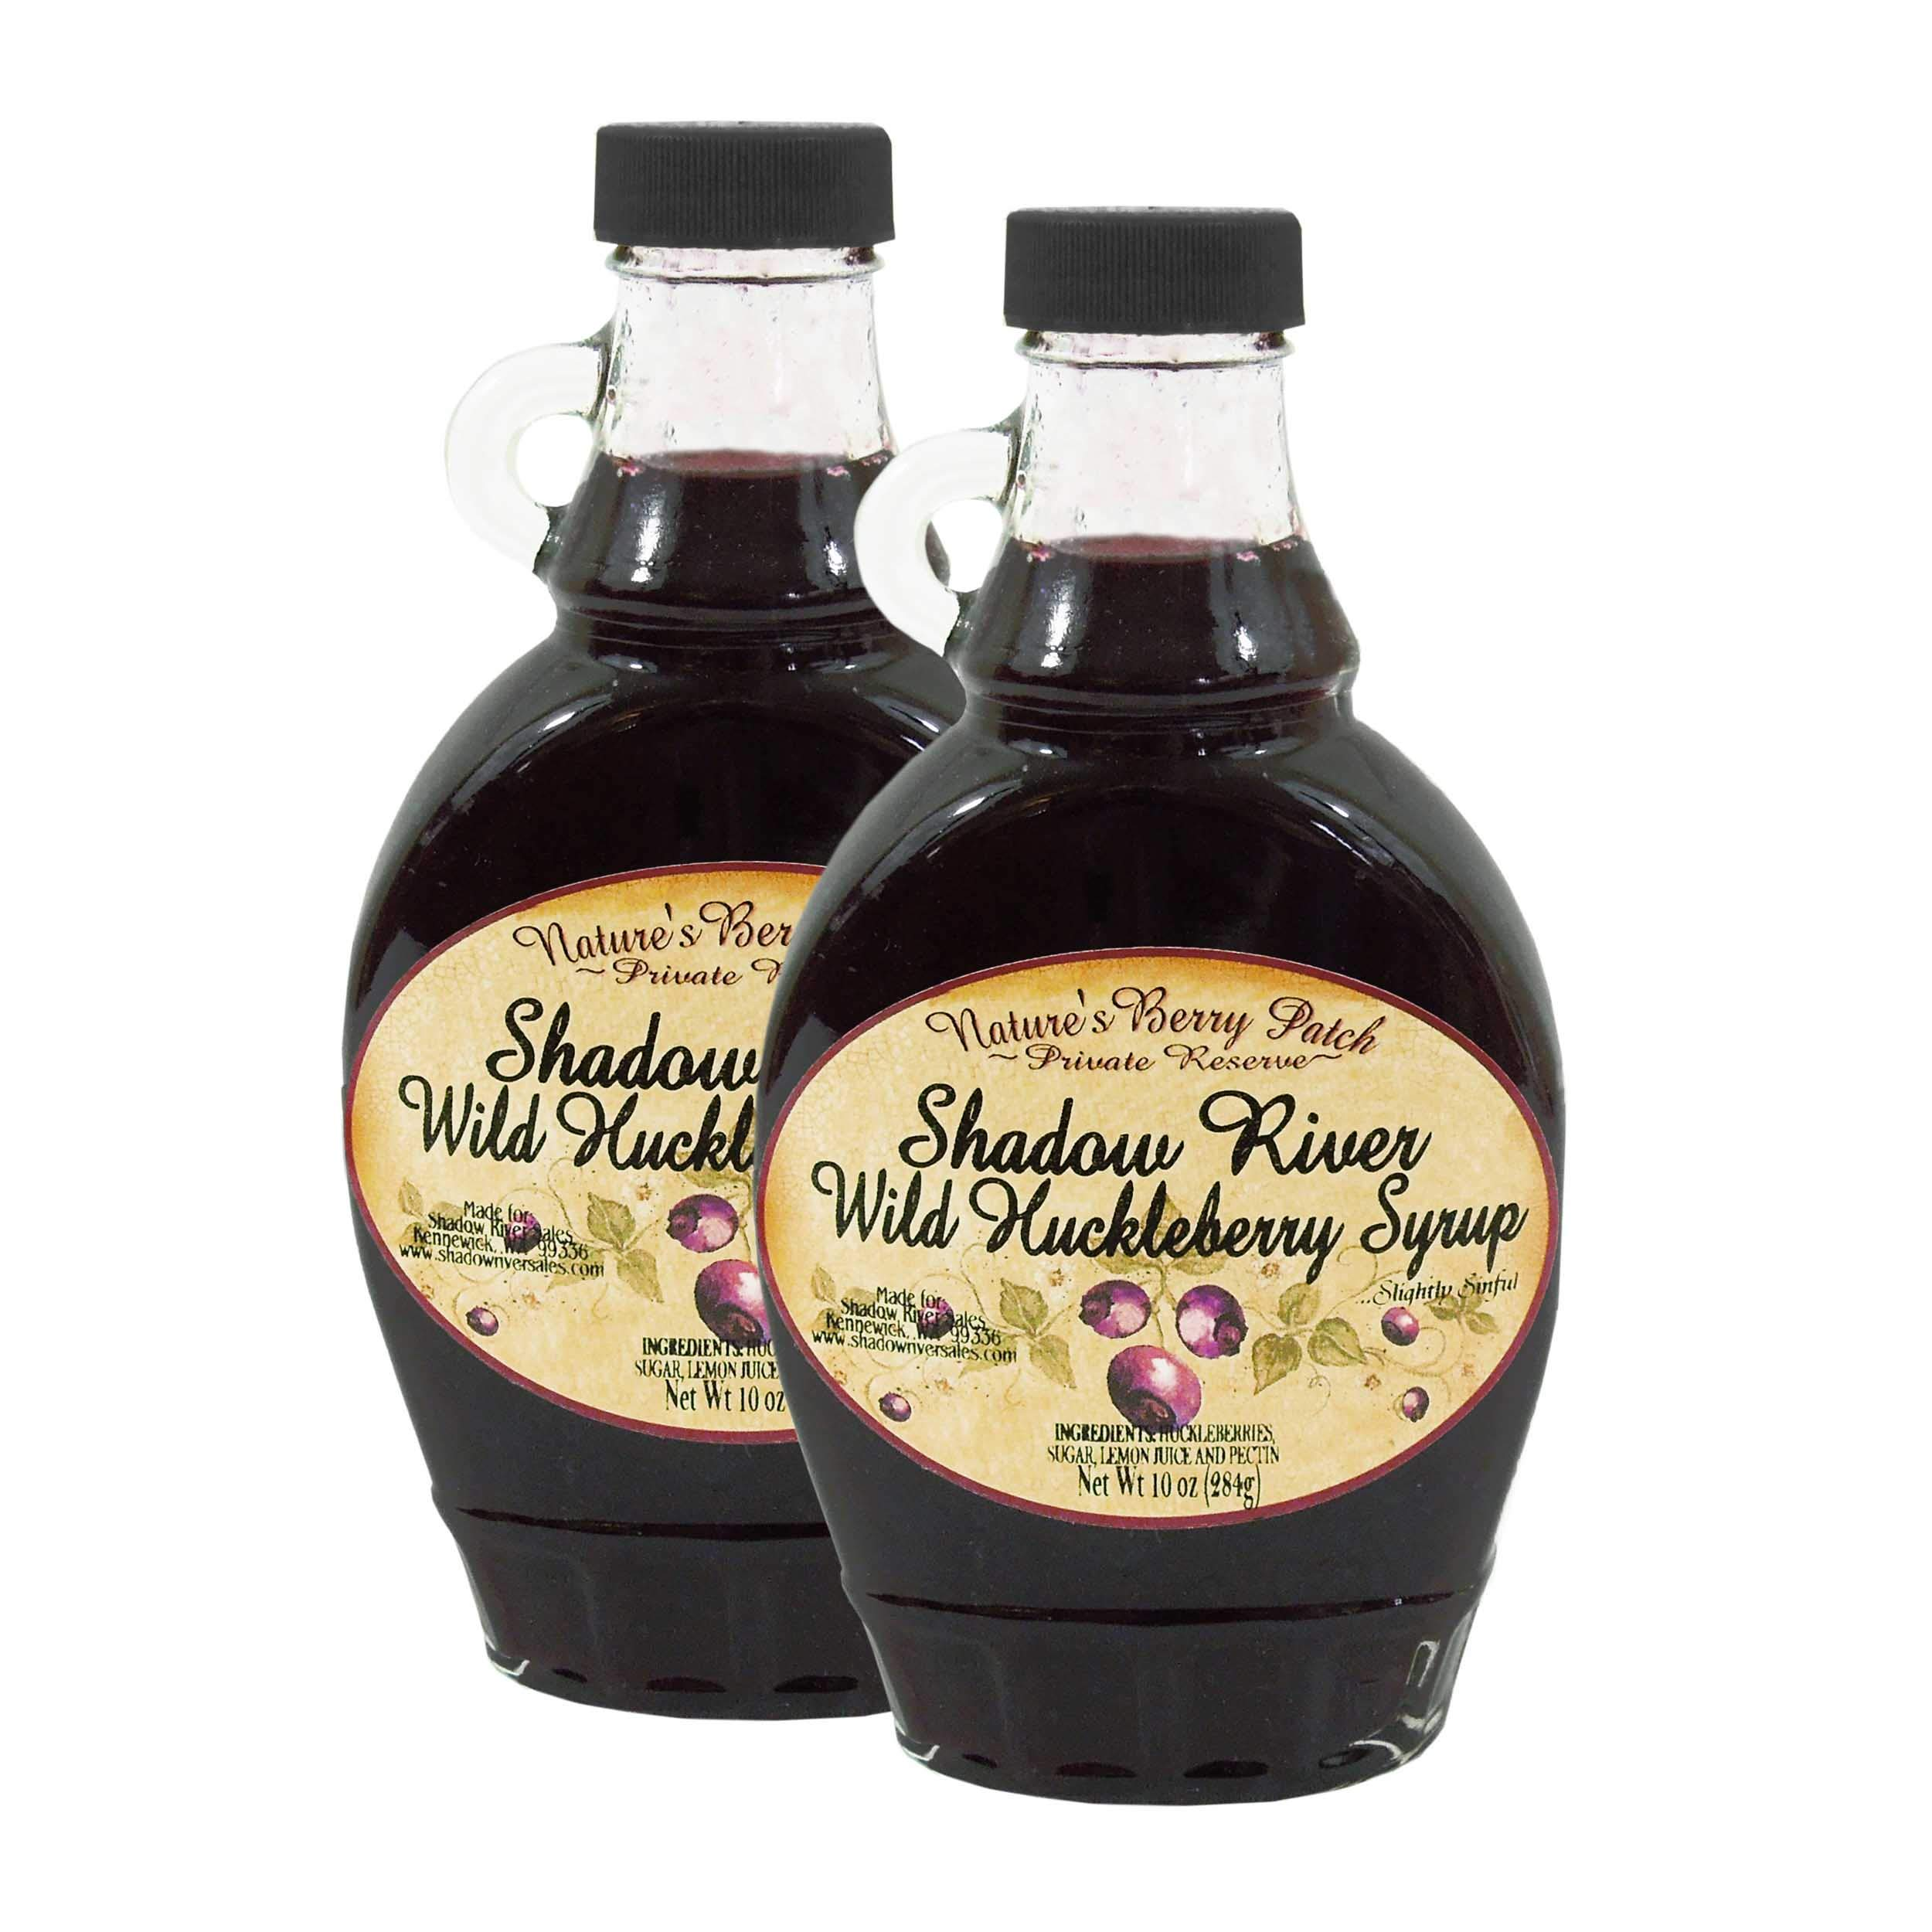 Shadow River Wild Huckleberry Gourmet Berry Syrup With Real Fruit Pieces, 10 oz Jar - Pack of 2 by Shadow River (Image #1)